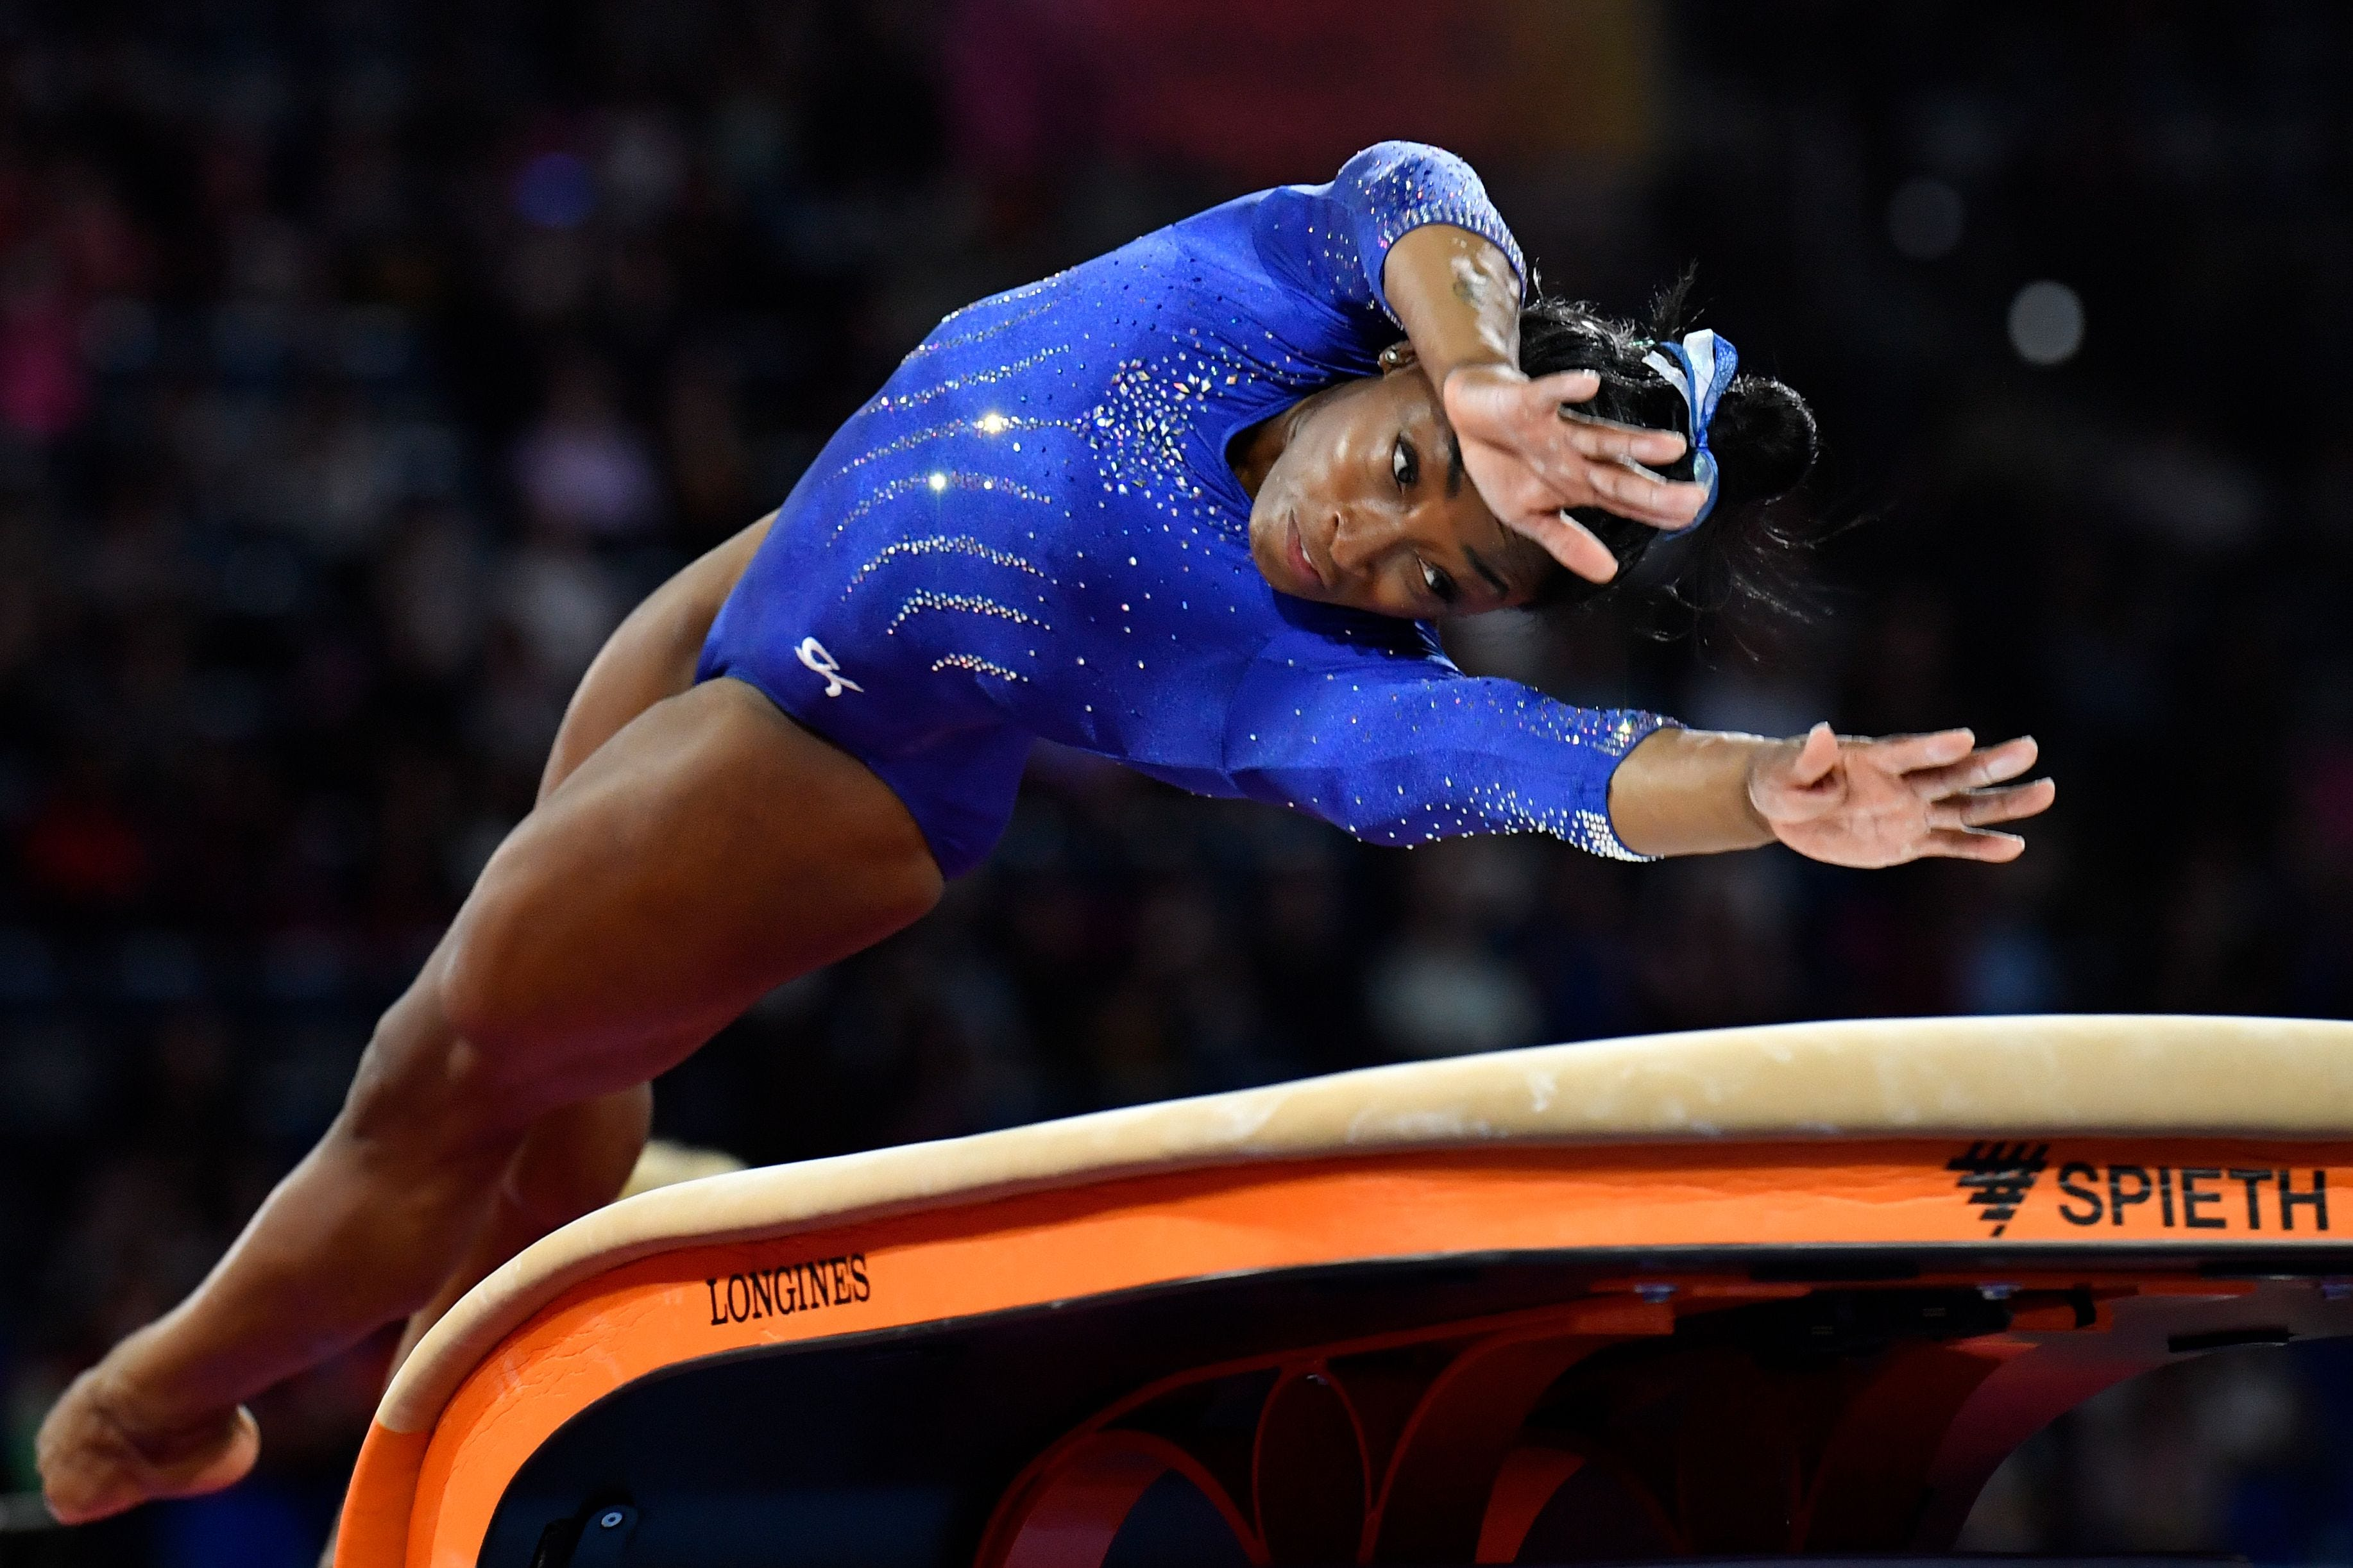 Opinion: Simone Biles' new vault move pushes boundaries and motivates her for Olympics